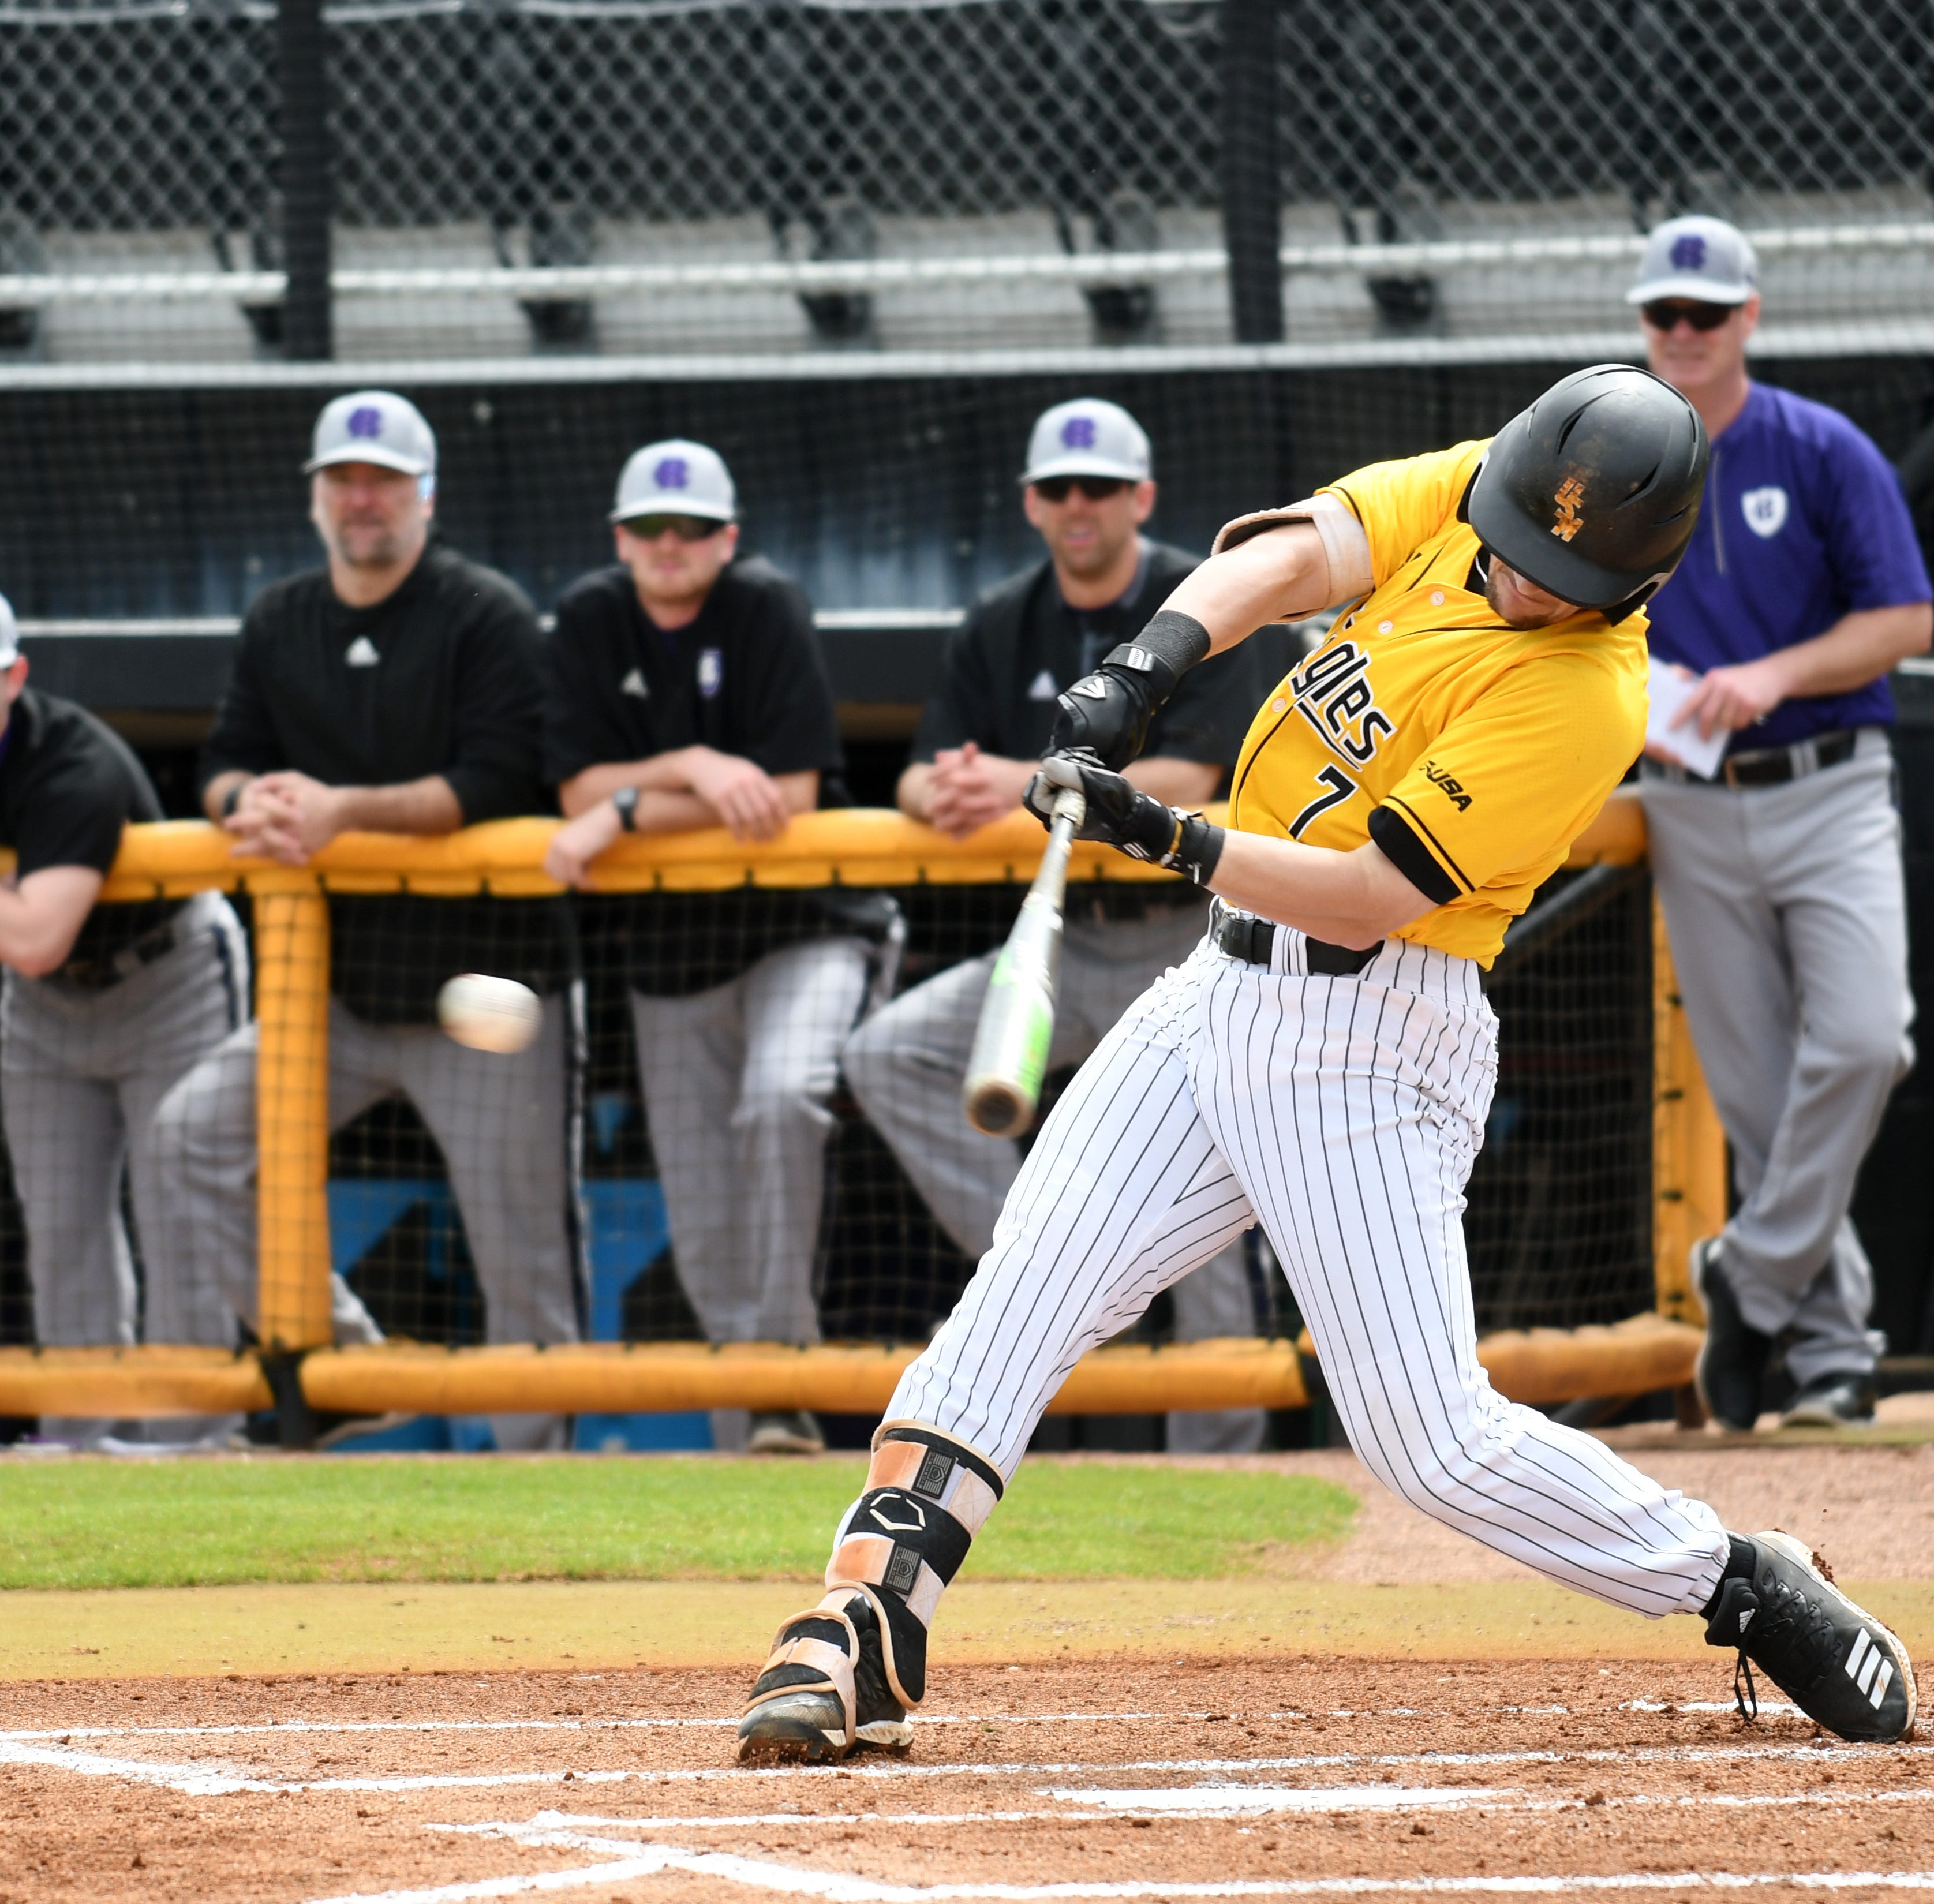 Southern Miss baseball rallies late to beat Louisiana-Monroe, 5-4